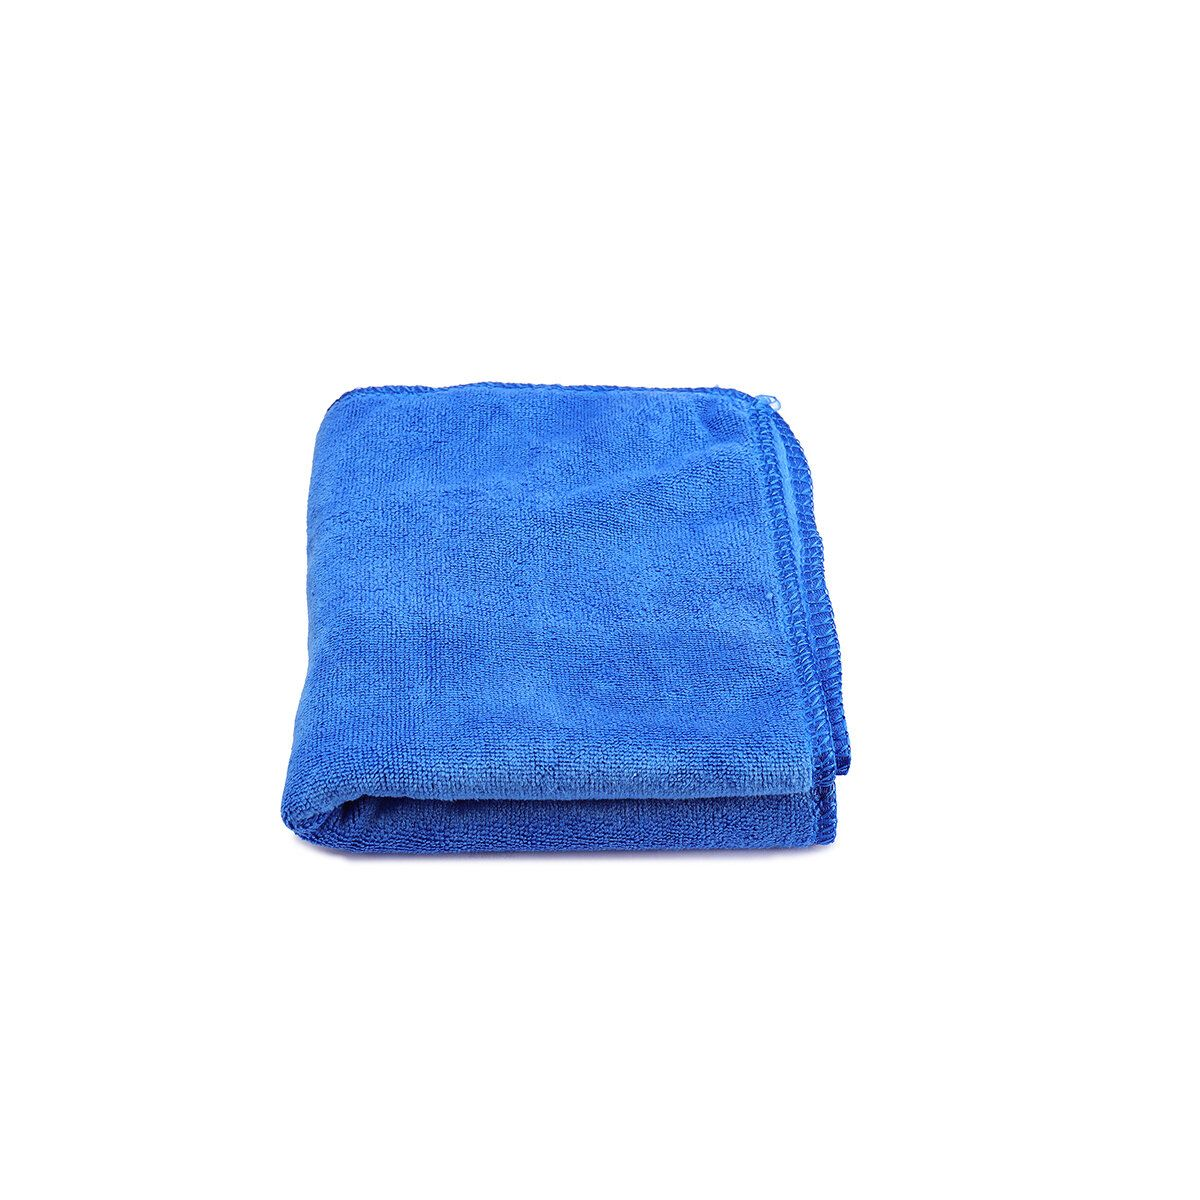 IFP US$3.78 Microfiber Cleaning Cloths No Scratch Rag Car Polishing Detailing Towel